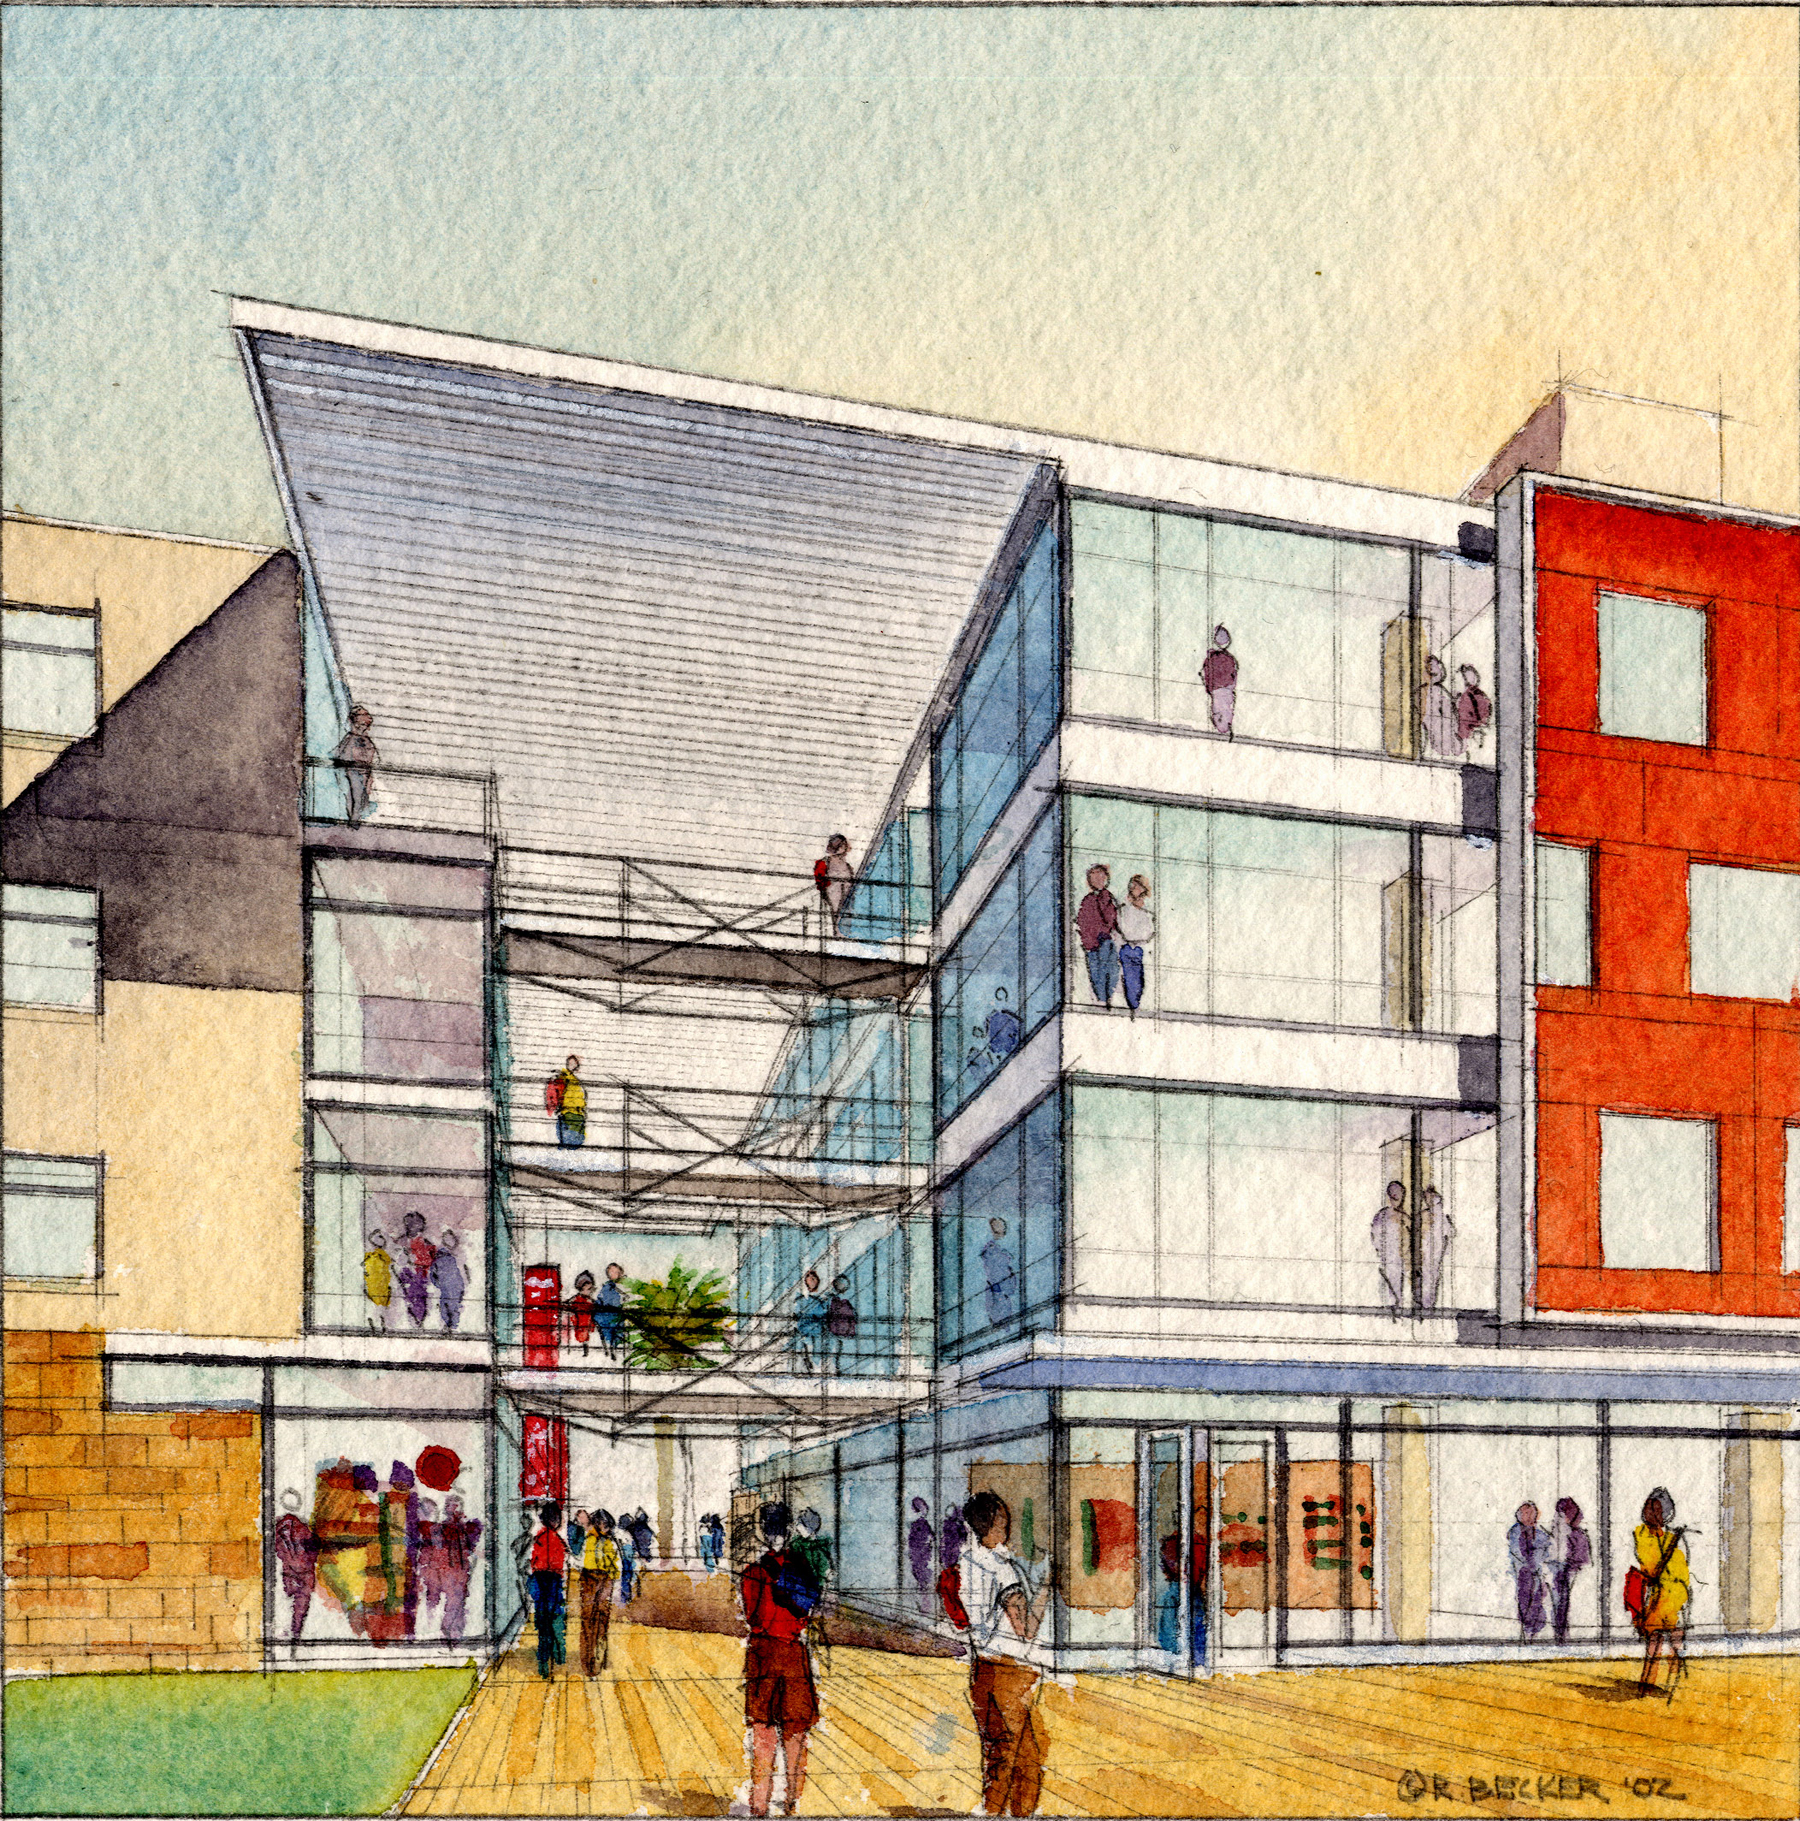 GHCP UCSD Entry watercolor sketch